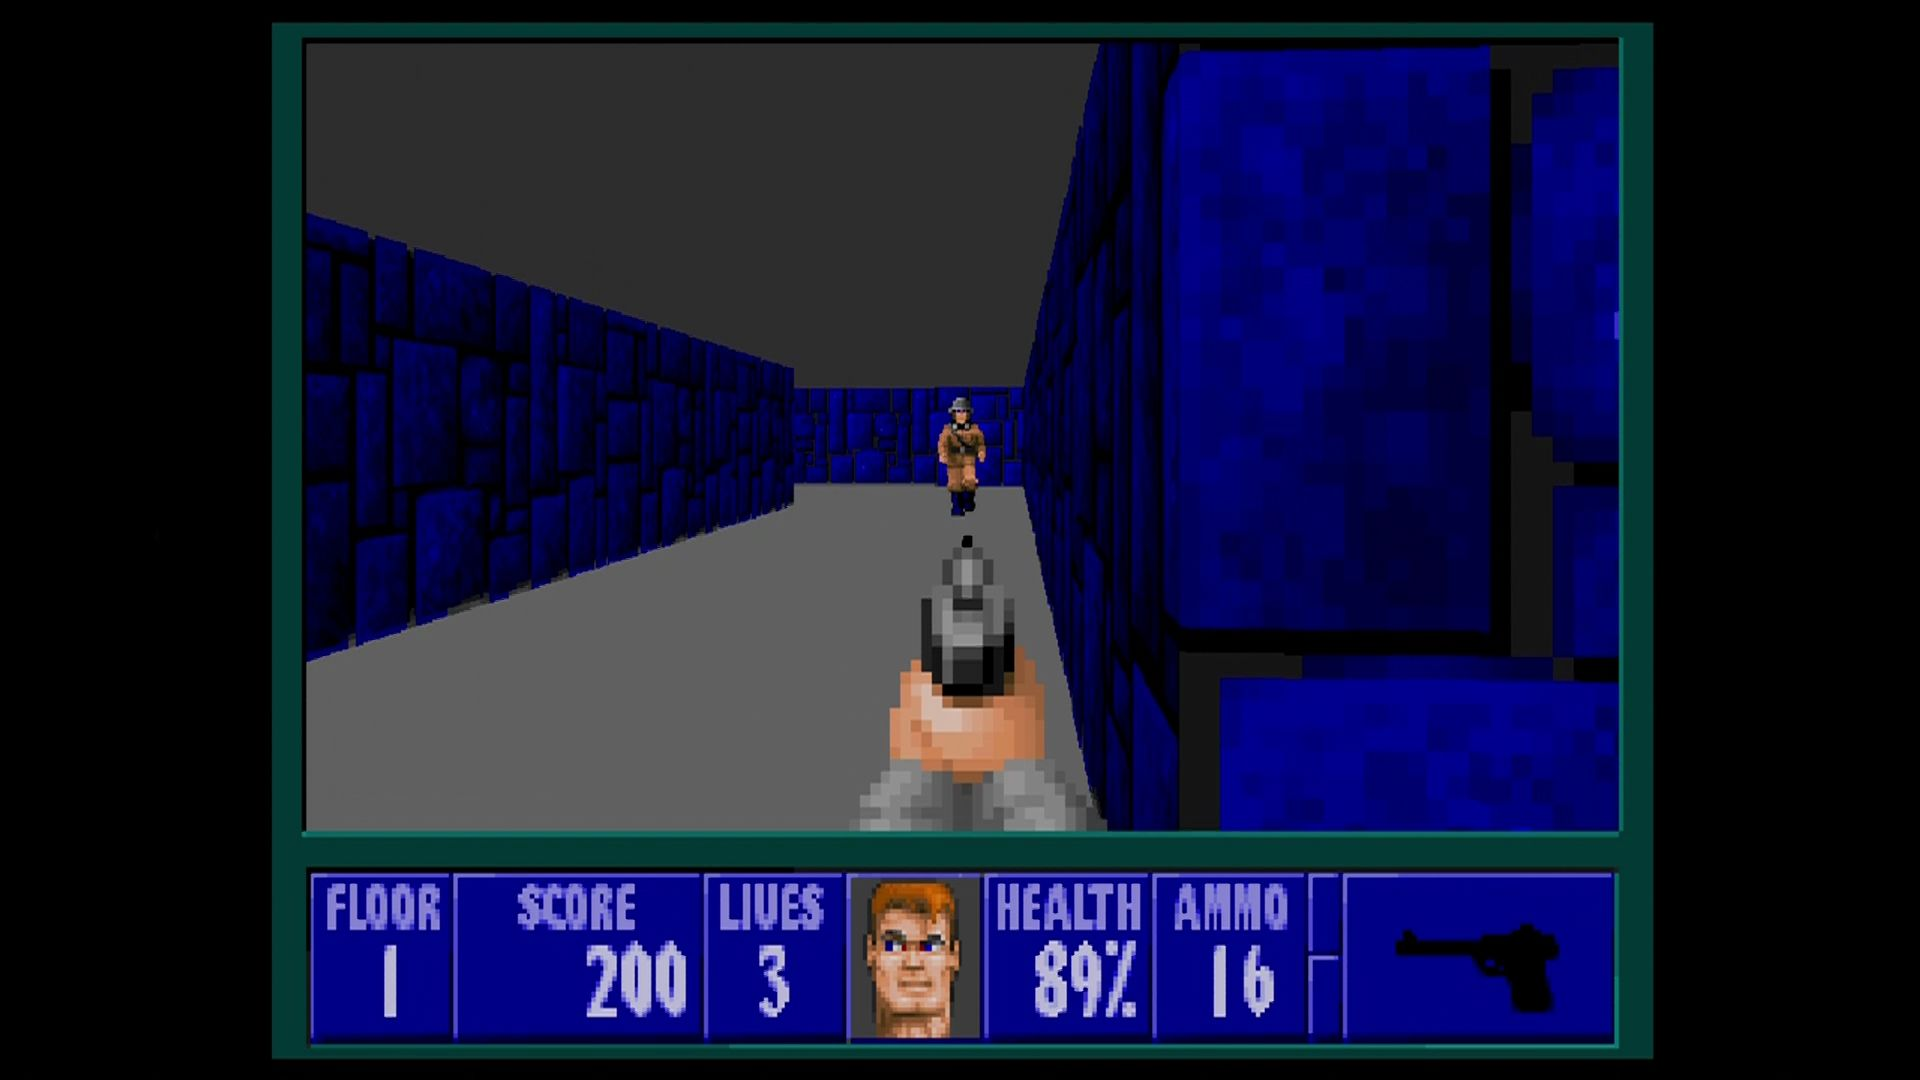 Wolfenstein 3d screenshots for xbox 360 mobygames for Wolfenstein 3d